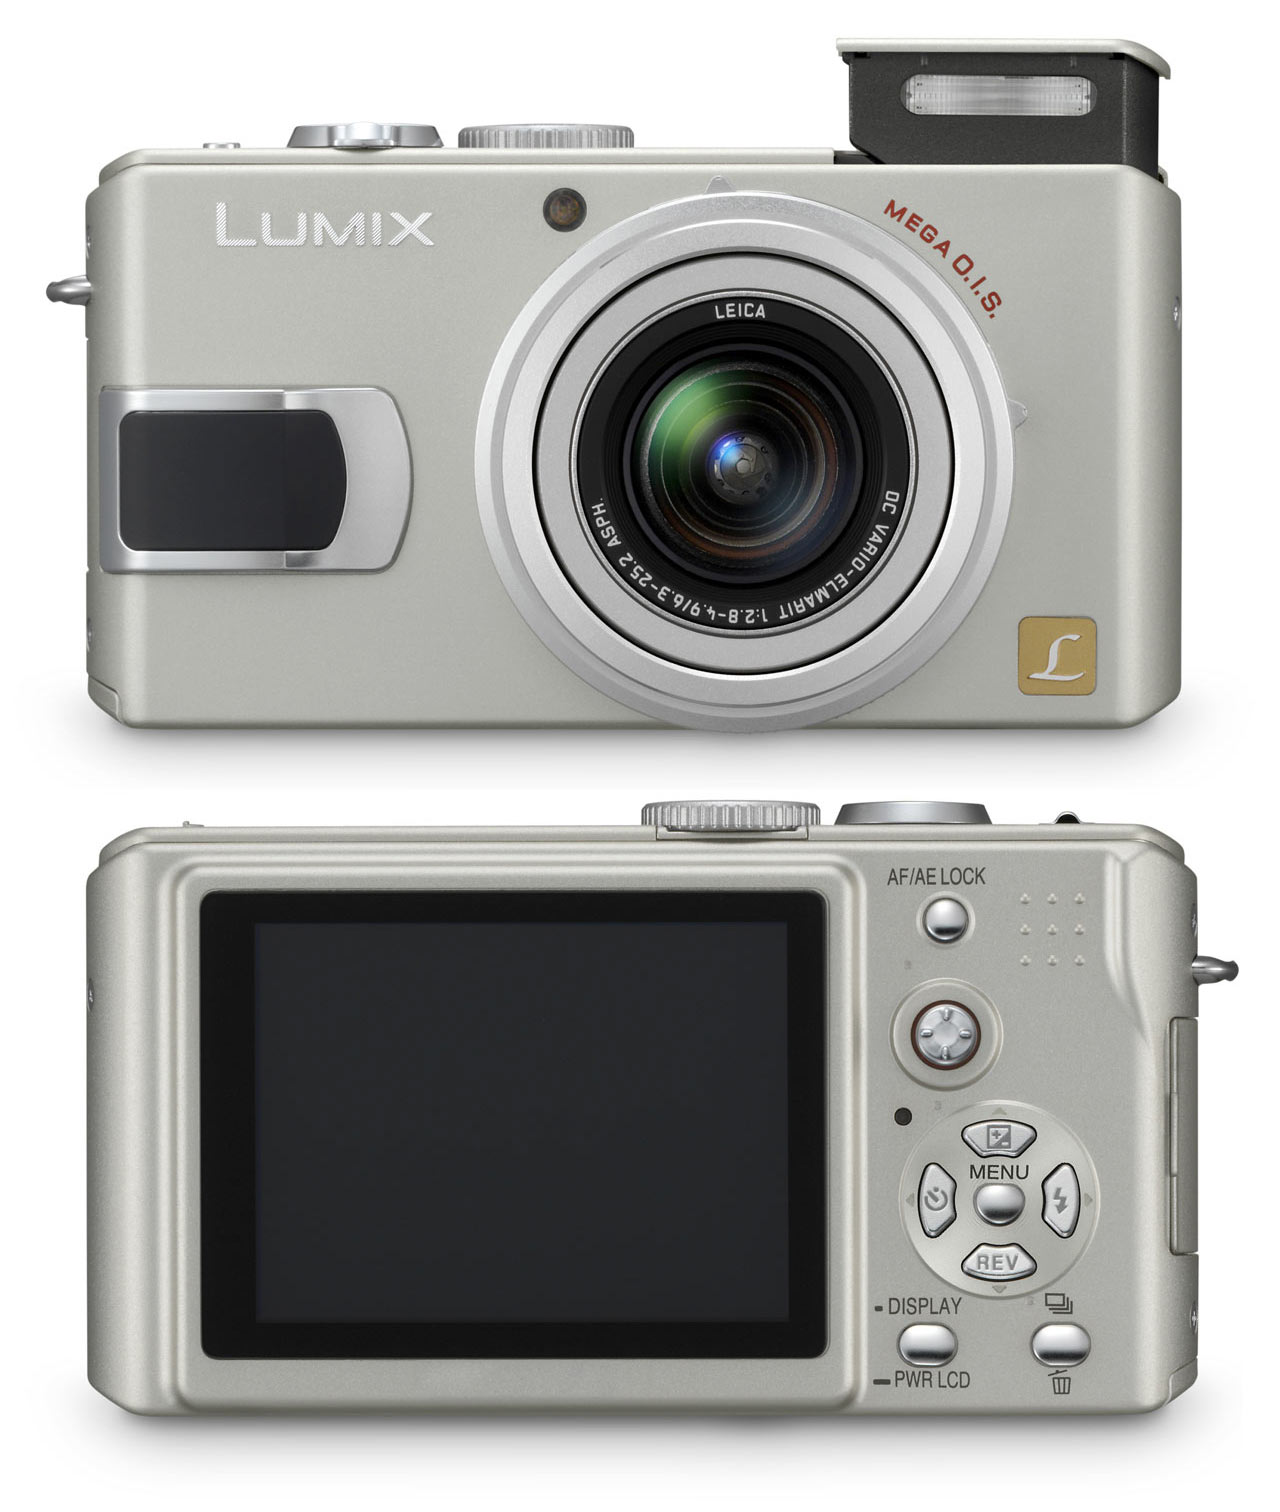 panasonic lumix dmc lx1 digital photography review rh dpreview com Panasonic Lumix Logo Panasonic Lumix Digital Camera